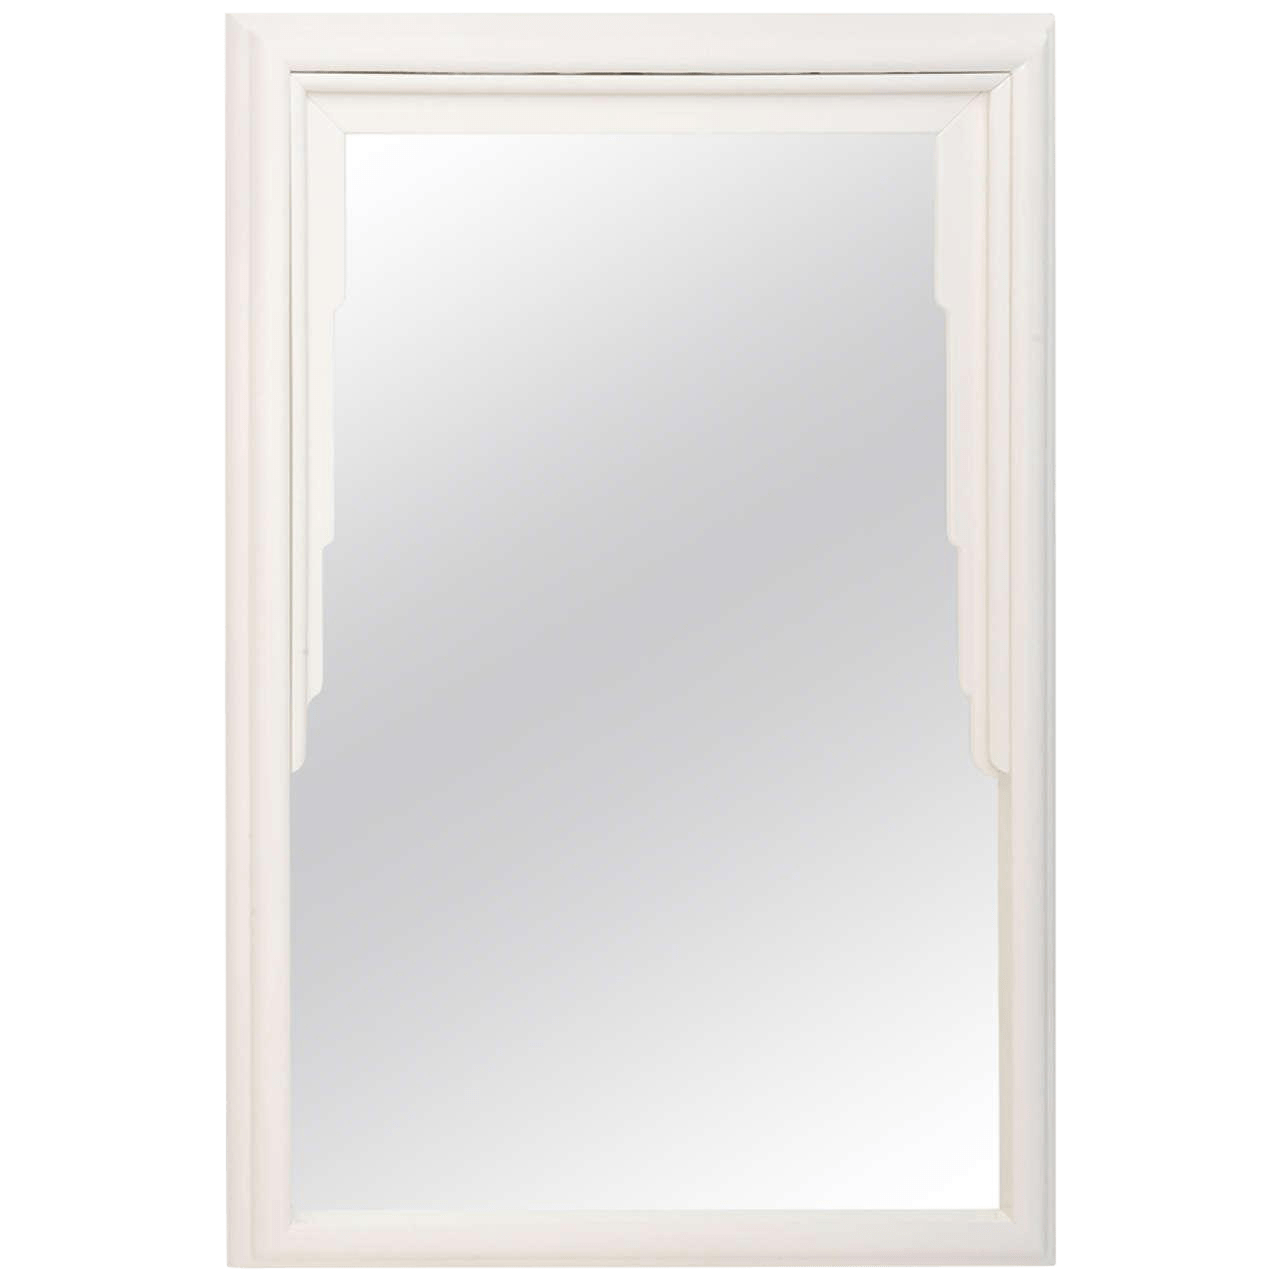 Art Deco Style Mirror Dorothy Draper Hollywood Regency Art Deco Style Mirror In White Lacquer